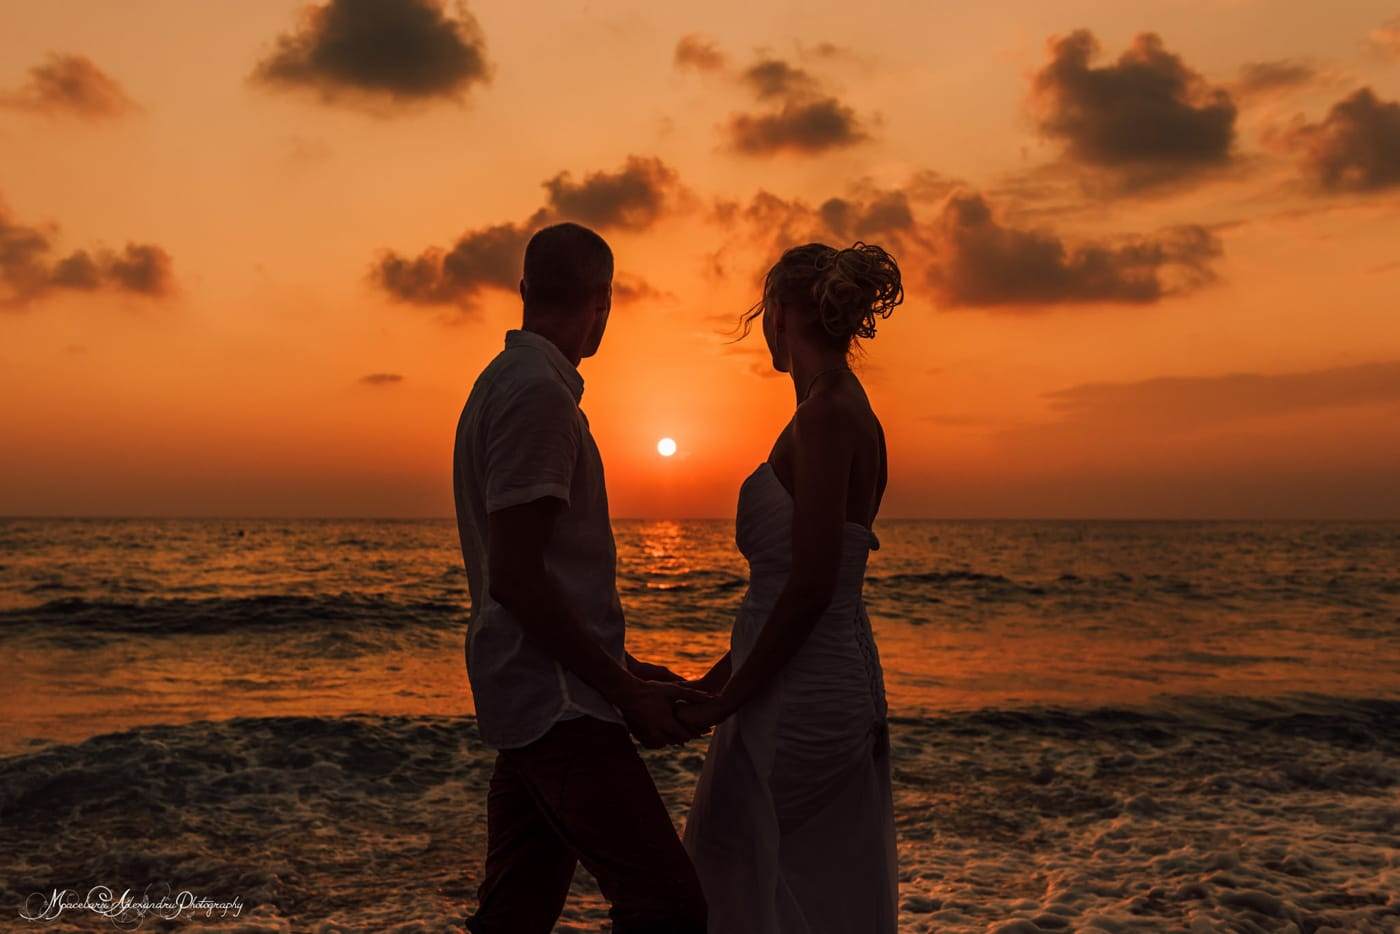 The amazing Cyprus sunset best place for a wedding photographer.